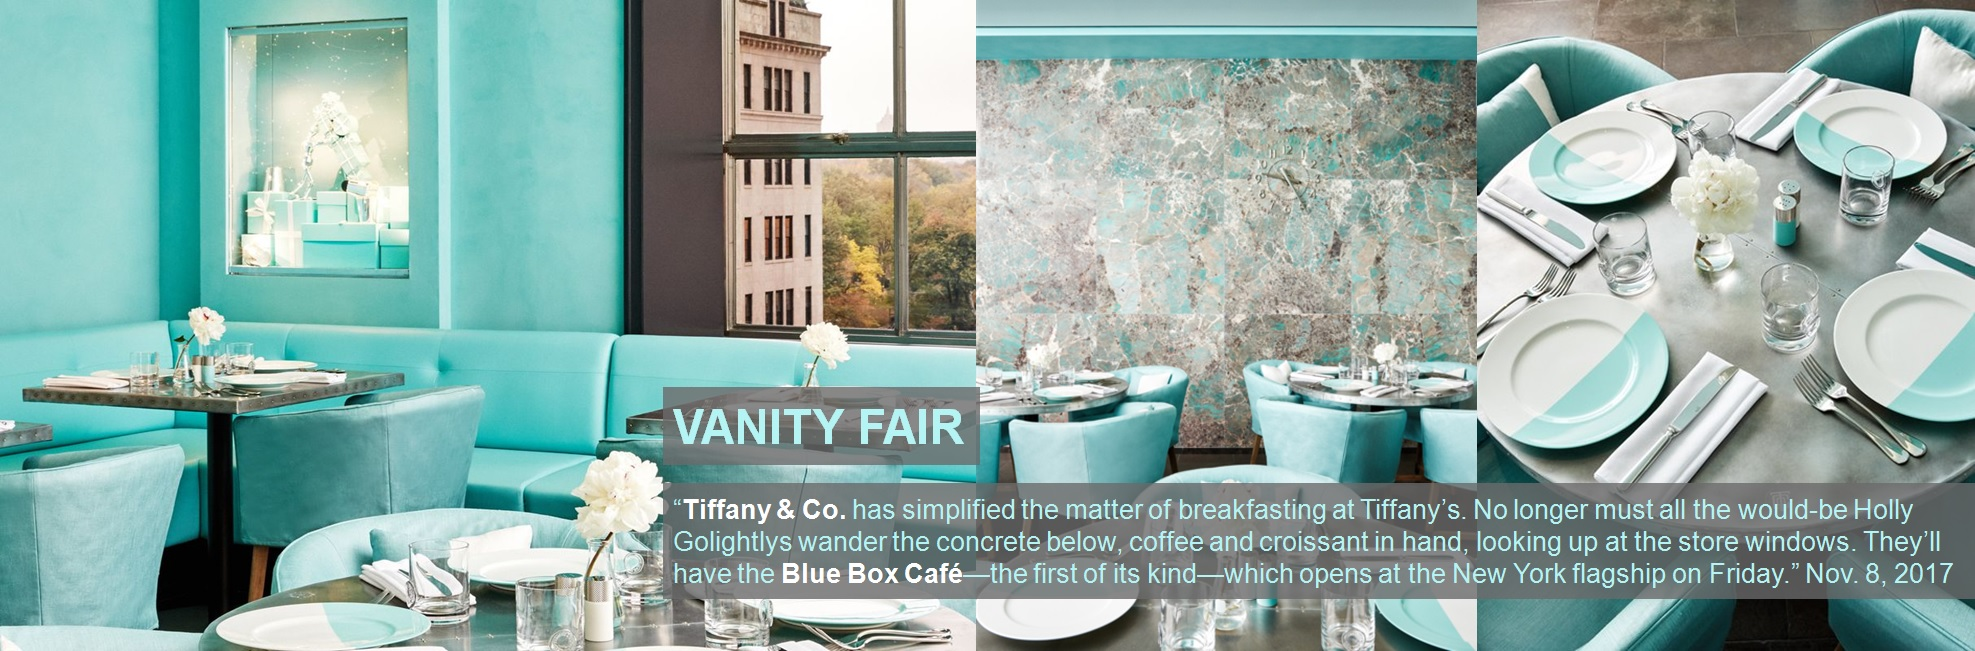 Vanity Fair Nov 8 2017 Tiffany's.jpg